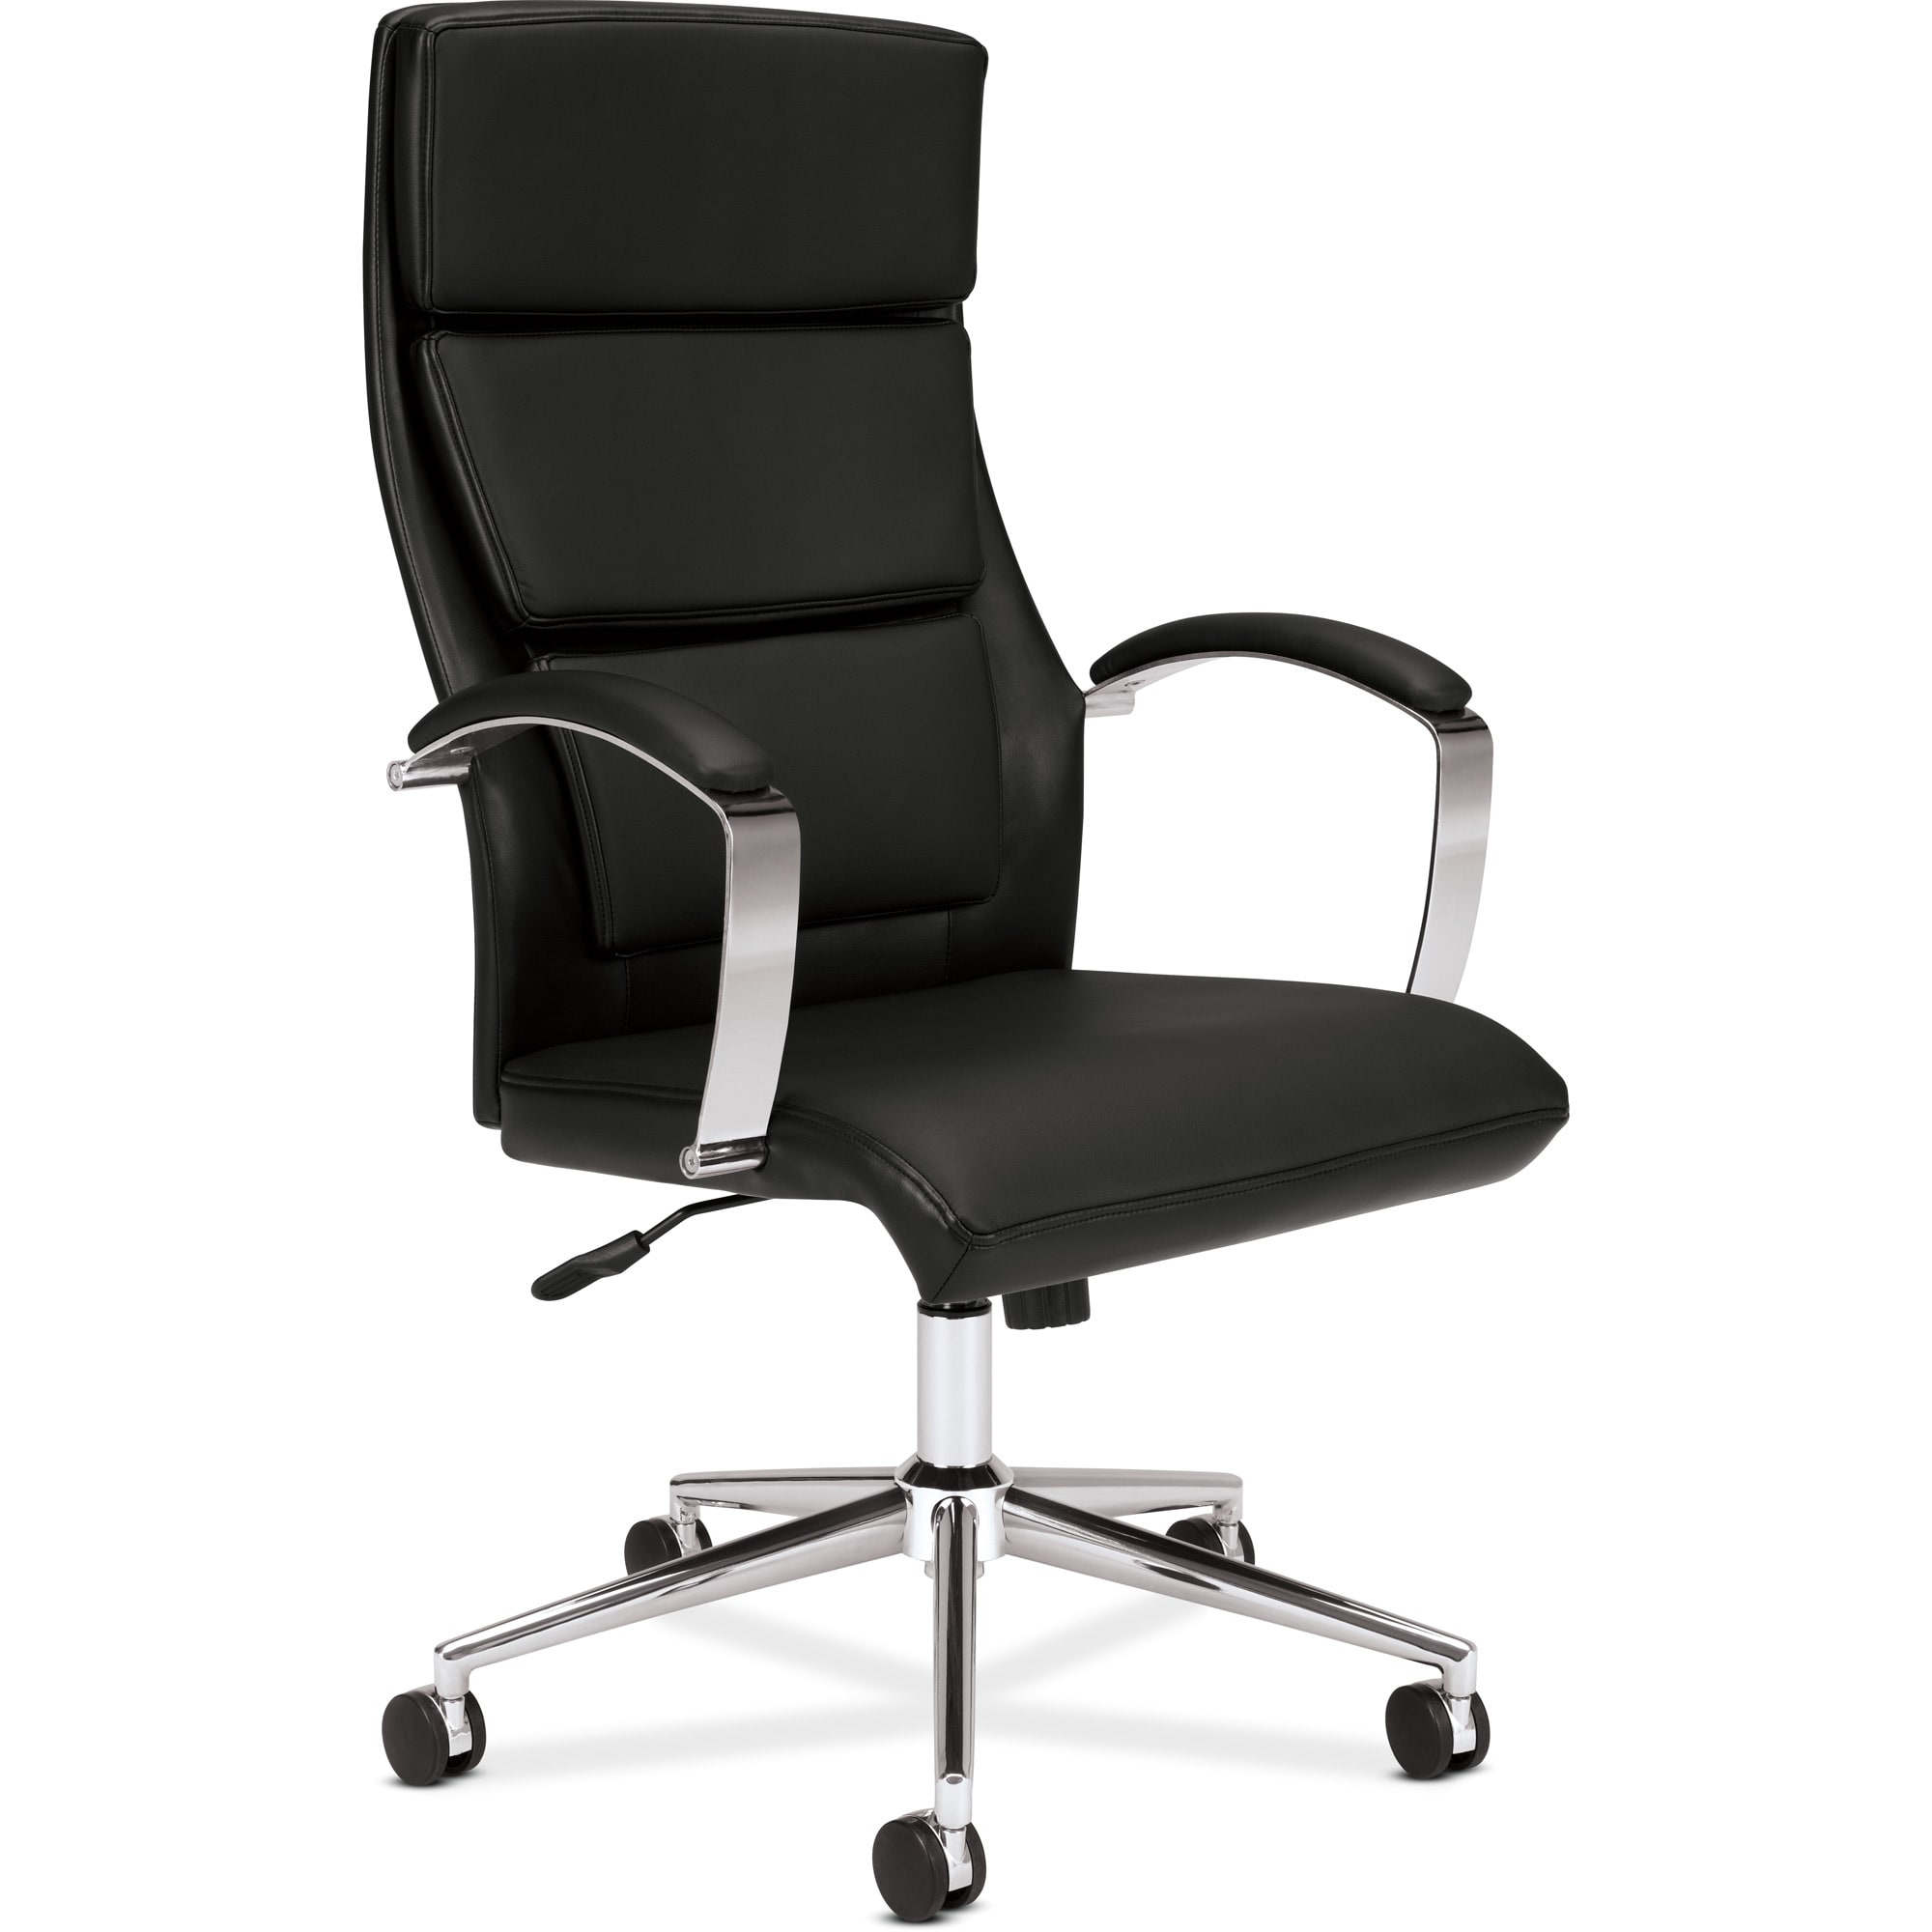 office chair overstock white dining room chairs set of 4 basyx by hon vl105 black high back executive task